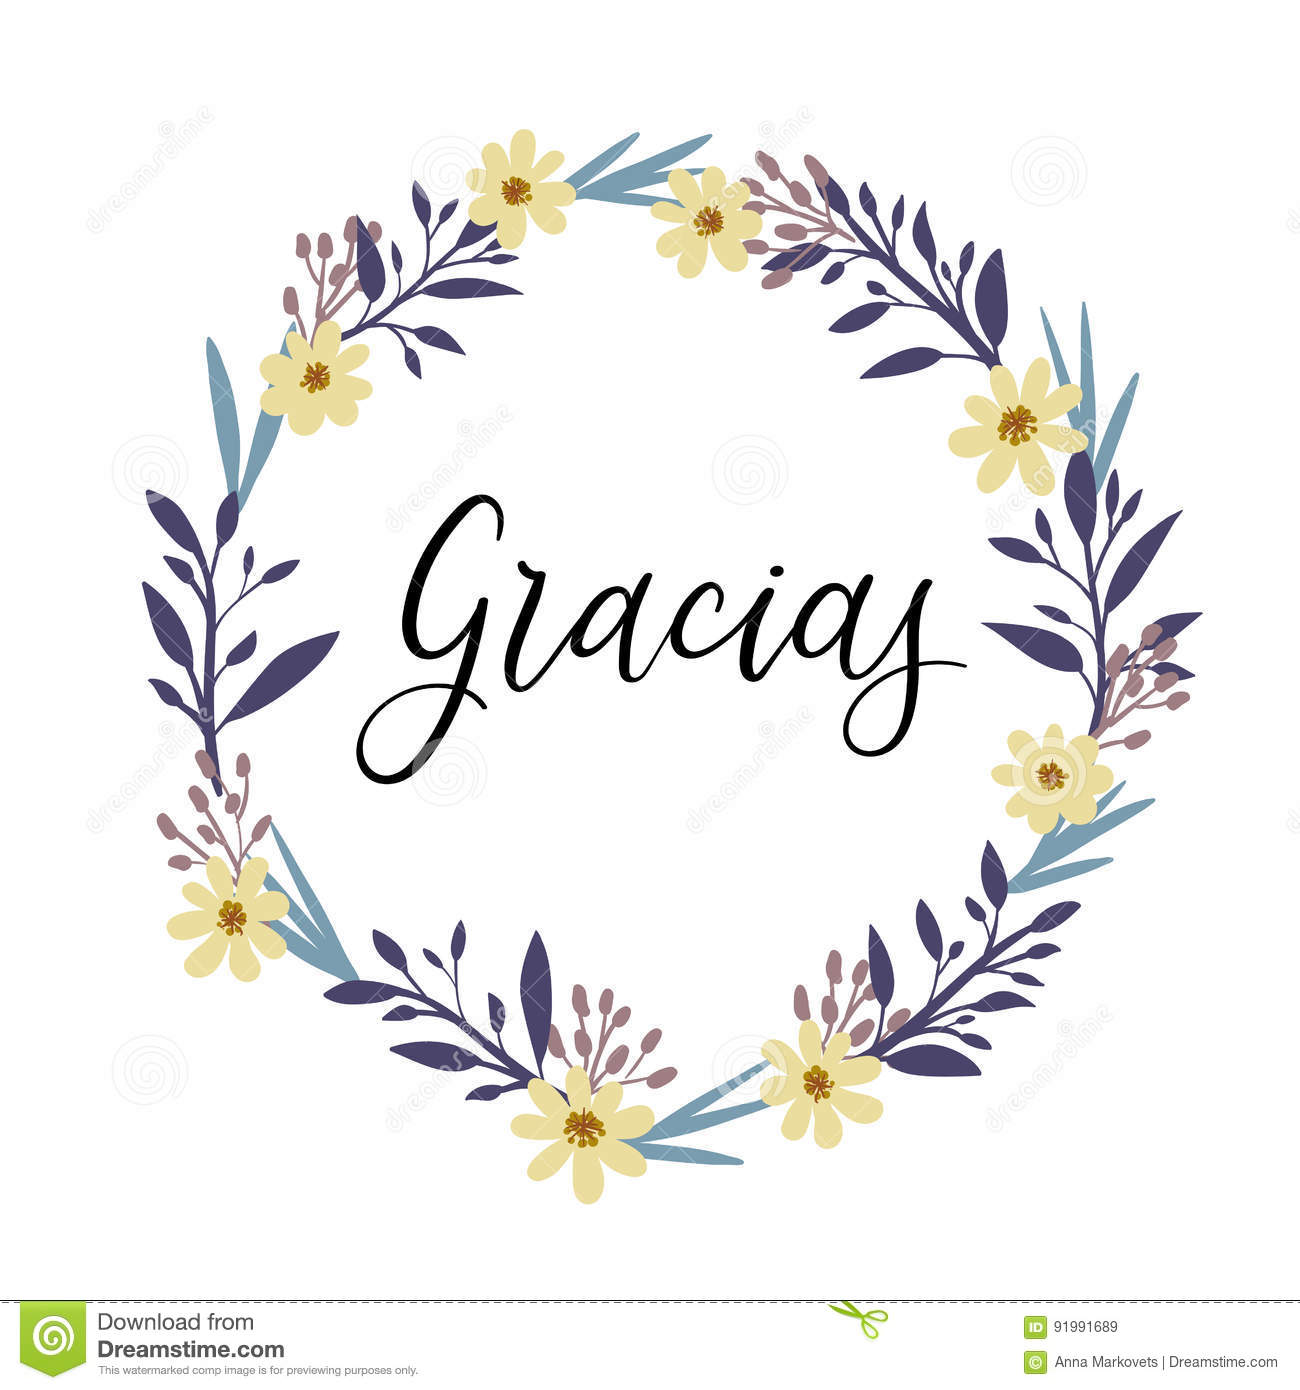 Gracias Thank You In Spanish Calligraphy Greeting Card Vector